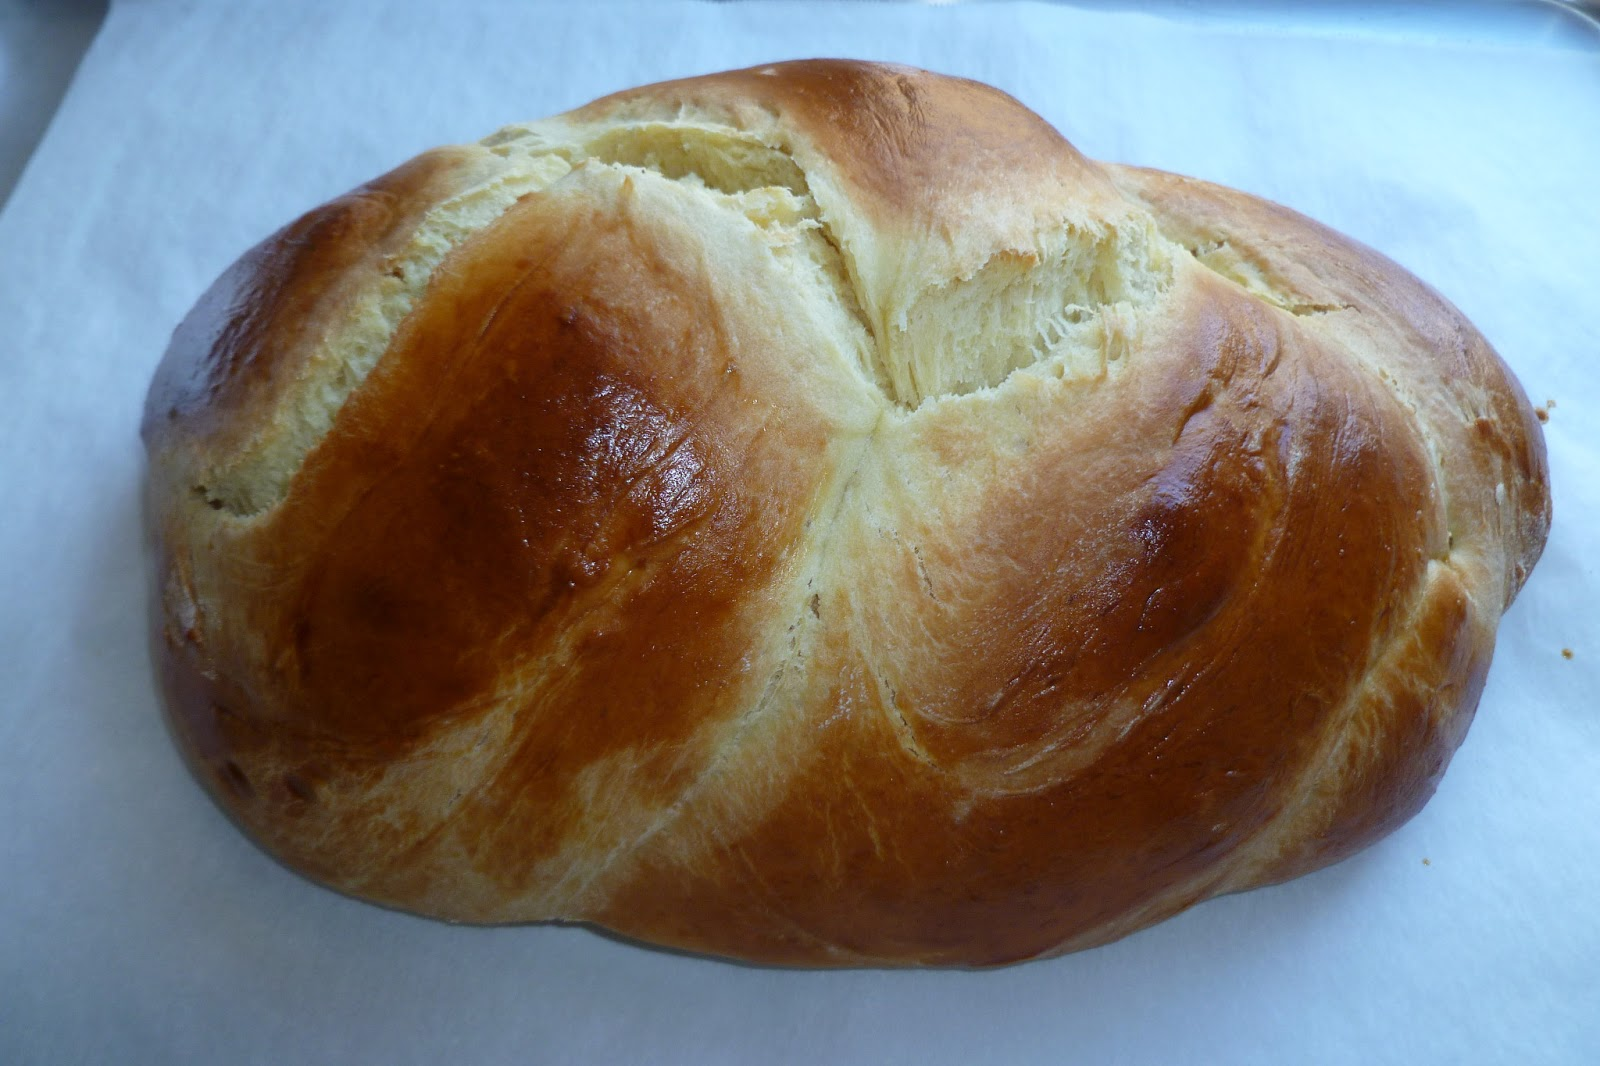 The Pastry Chef's Baking: Challah